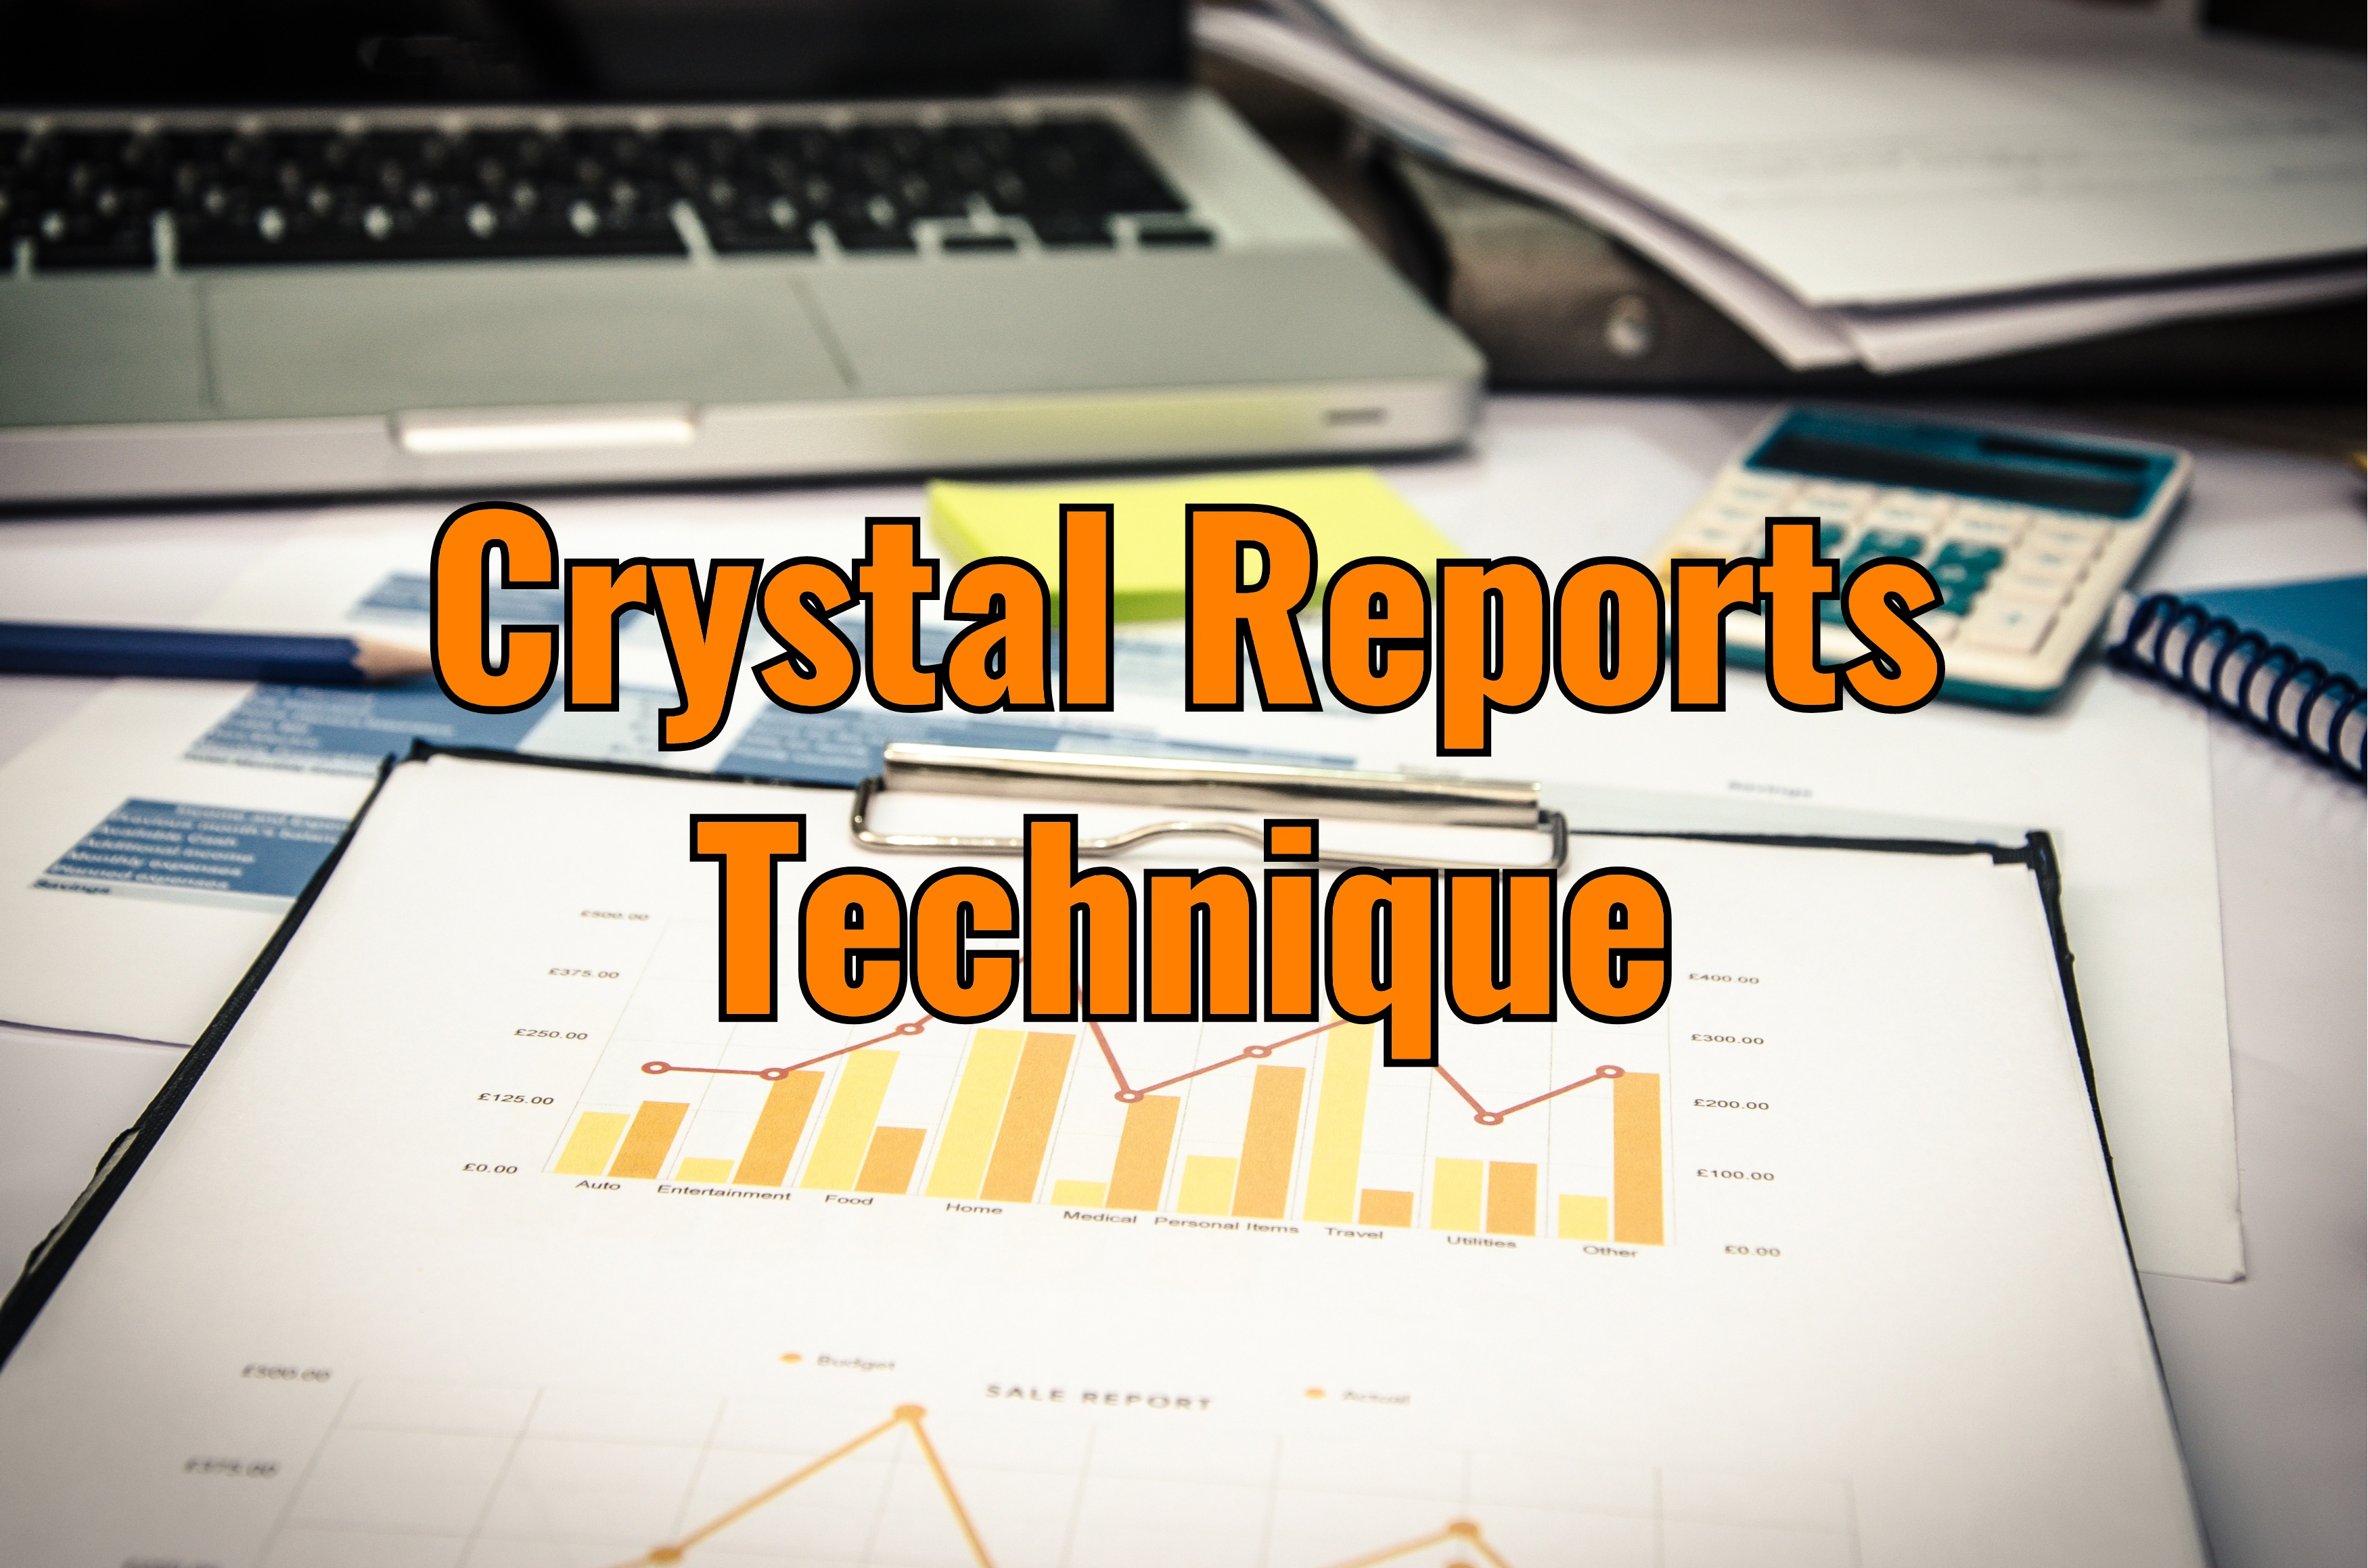 Crystal Reports Technique: Passing Data from Subreport to Parent